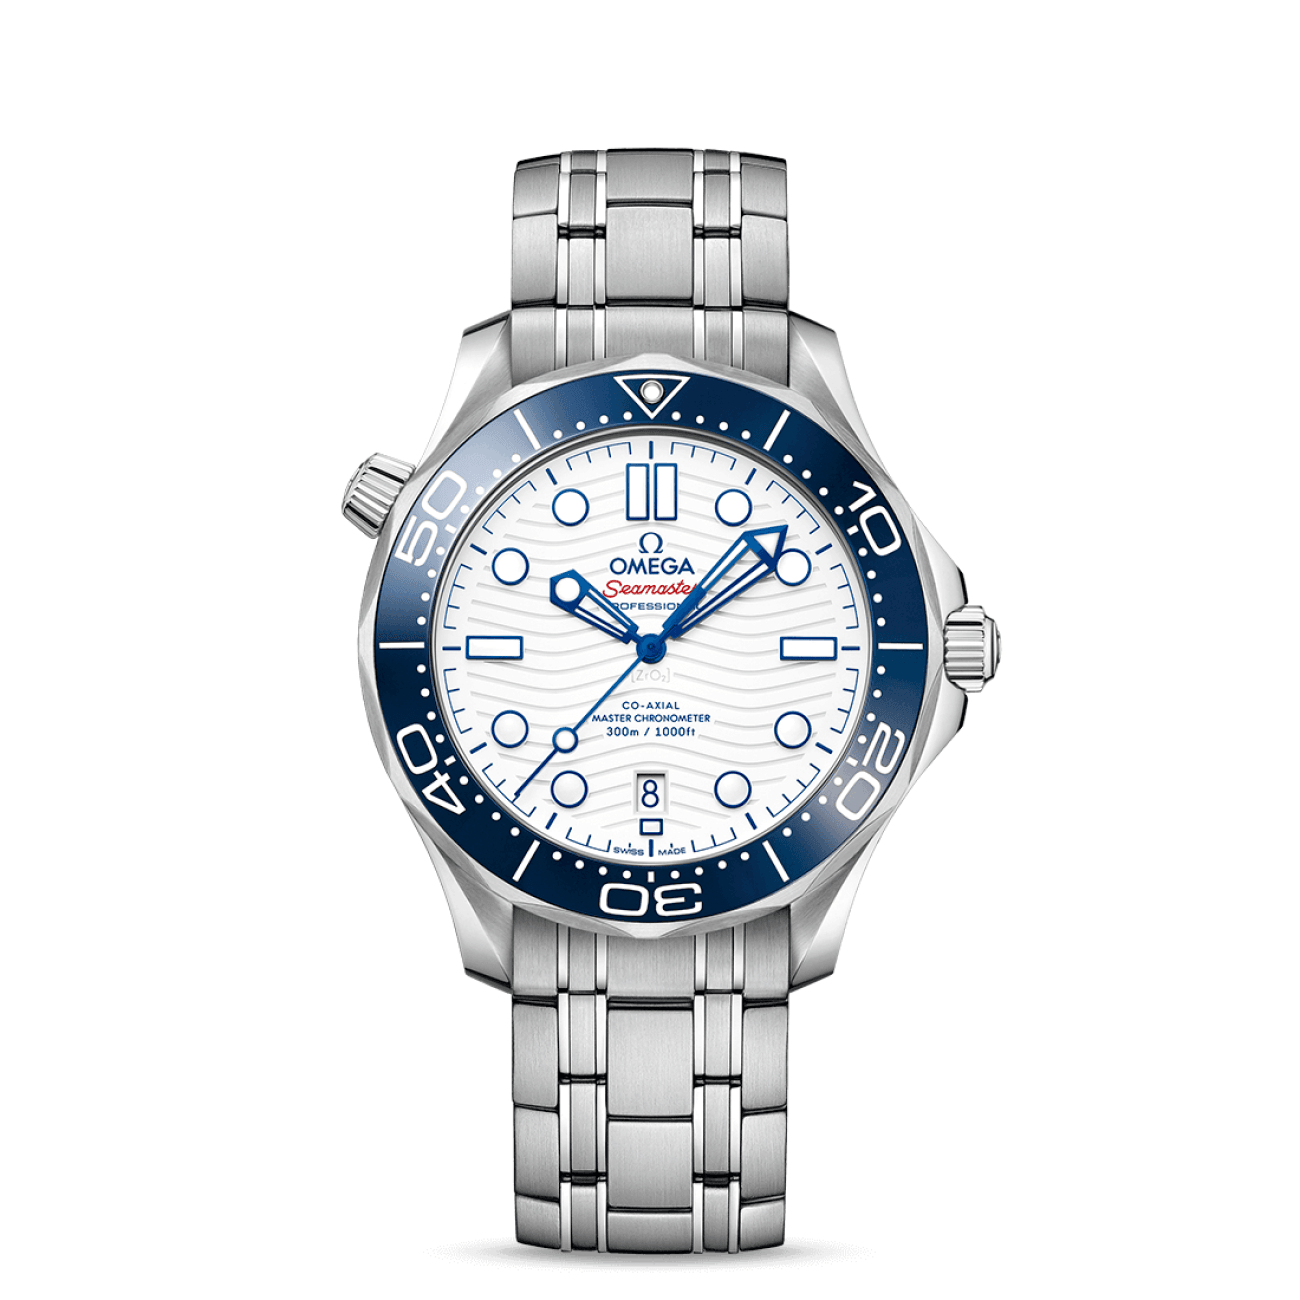 Omega Watches - Seamaster DIVER 300M OMEGA CO‑AXIAL MASTER CHRONOMETER 42 MM | Manfredi Jewels